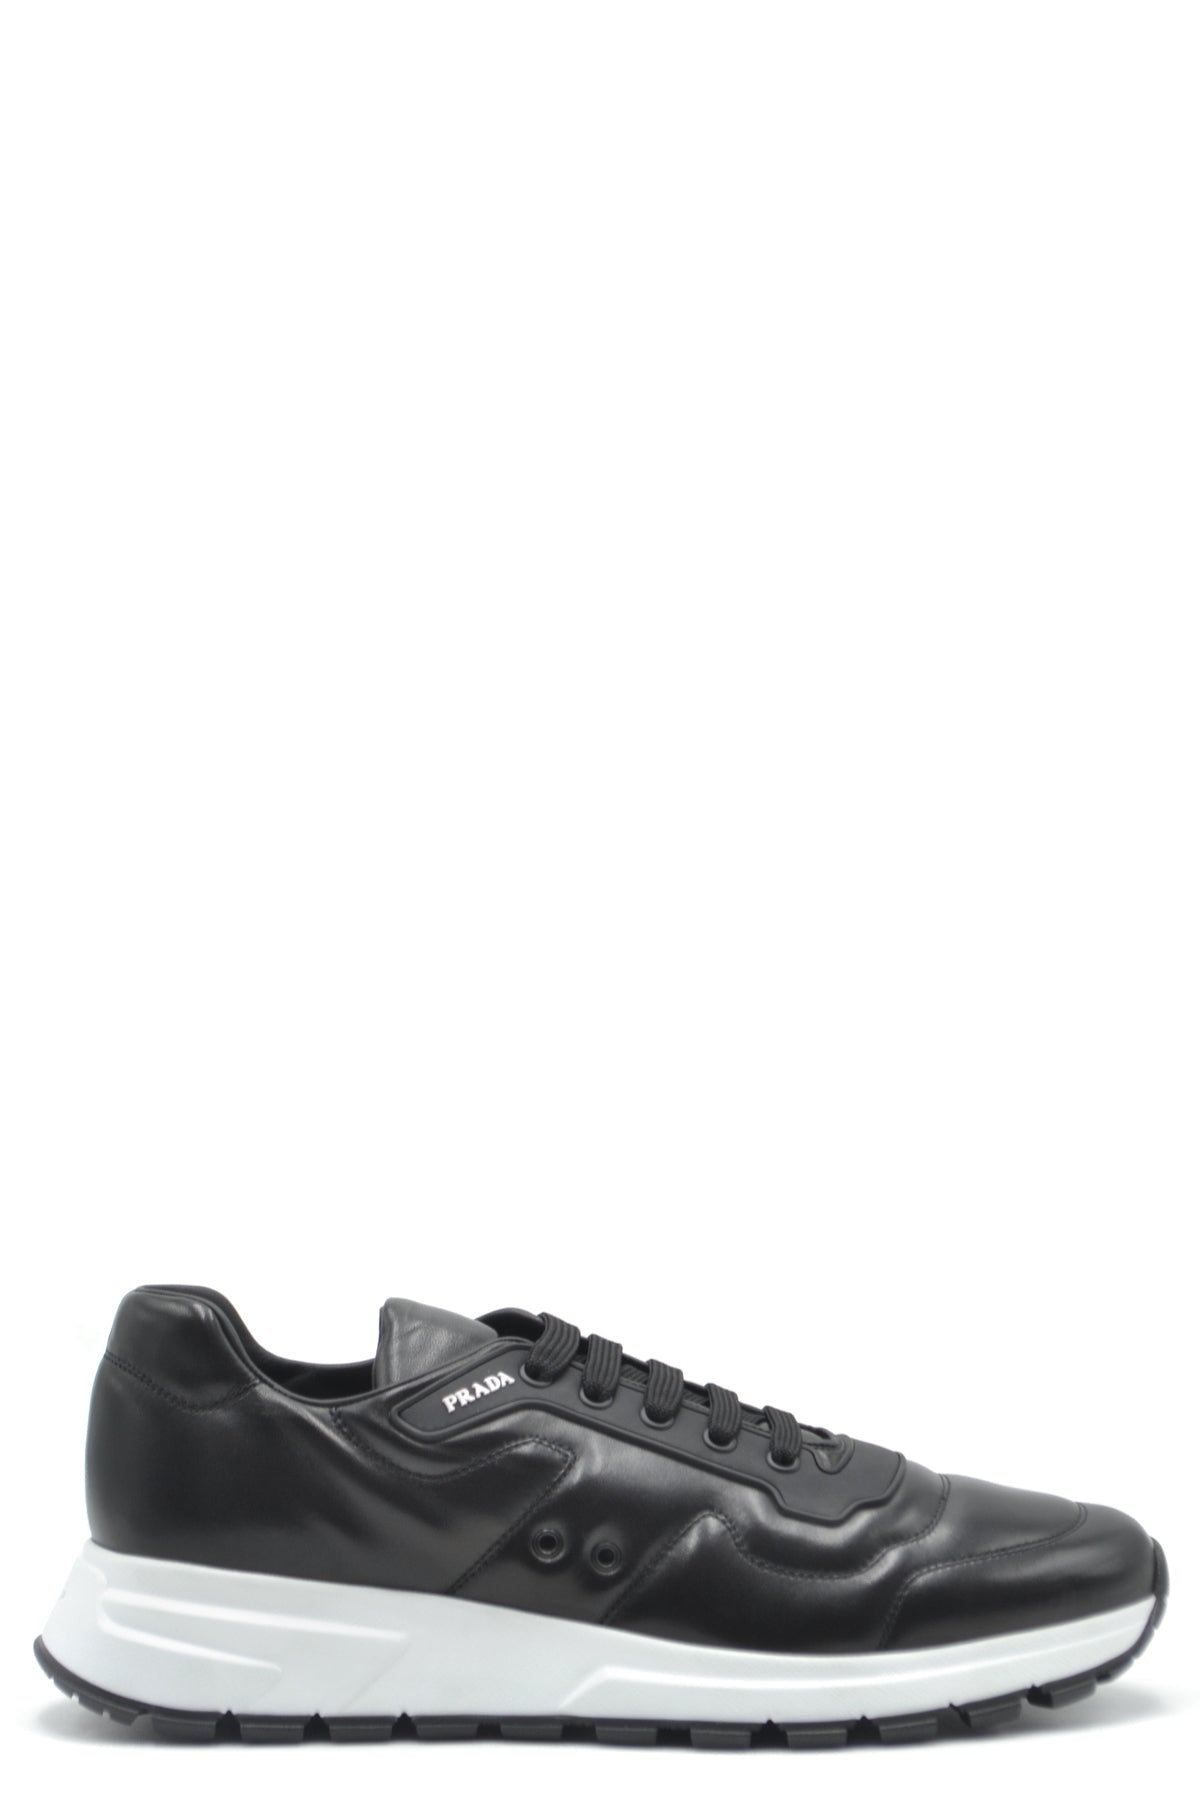 Shoes Prada-Sports & Entertainment - Sneakers-7-Product Details Terms: New With LabelMain Color: BlackType Of Accessory: ShoesSeason: Fall / WinterMade In: ItalyGender: ManSize: UkComposition: Leather 100%Year: 2020Manufacturer Part Number: 4E3433 072 F0967-Keyomi-Sook